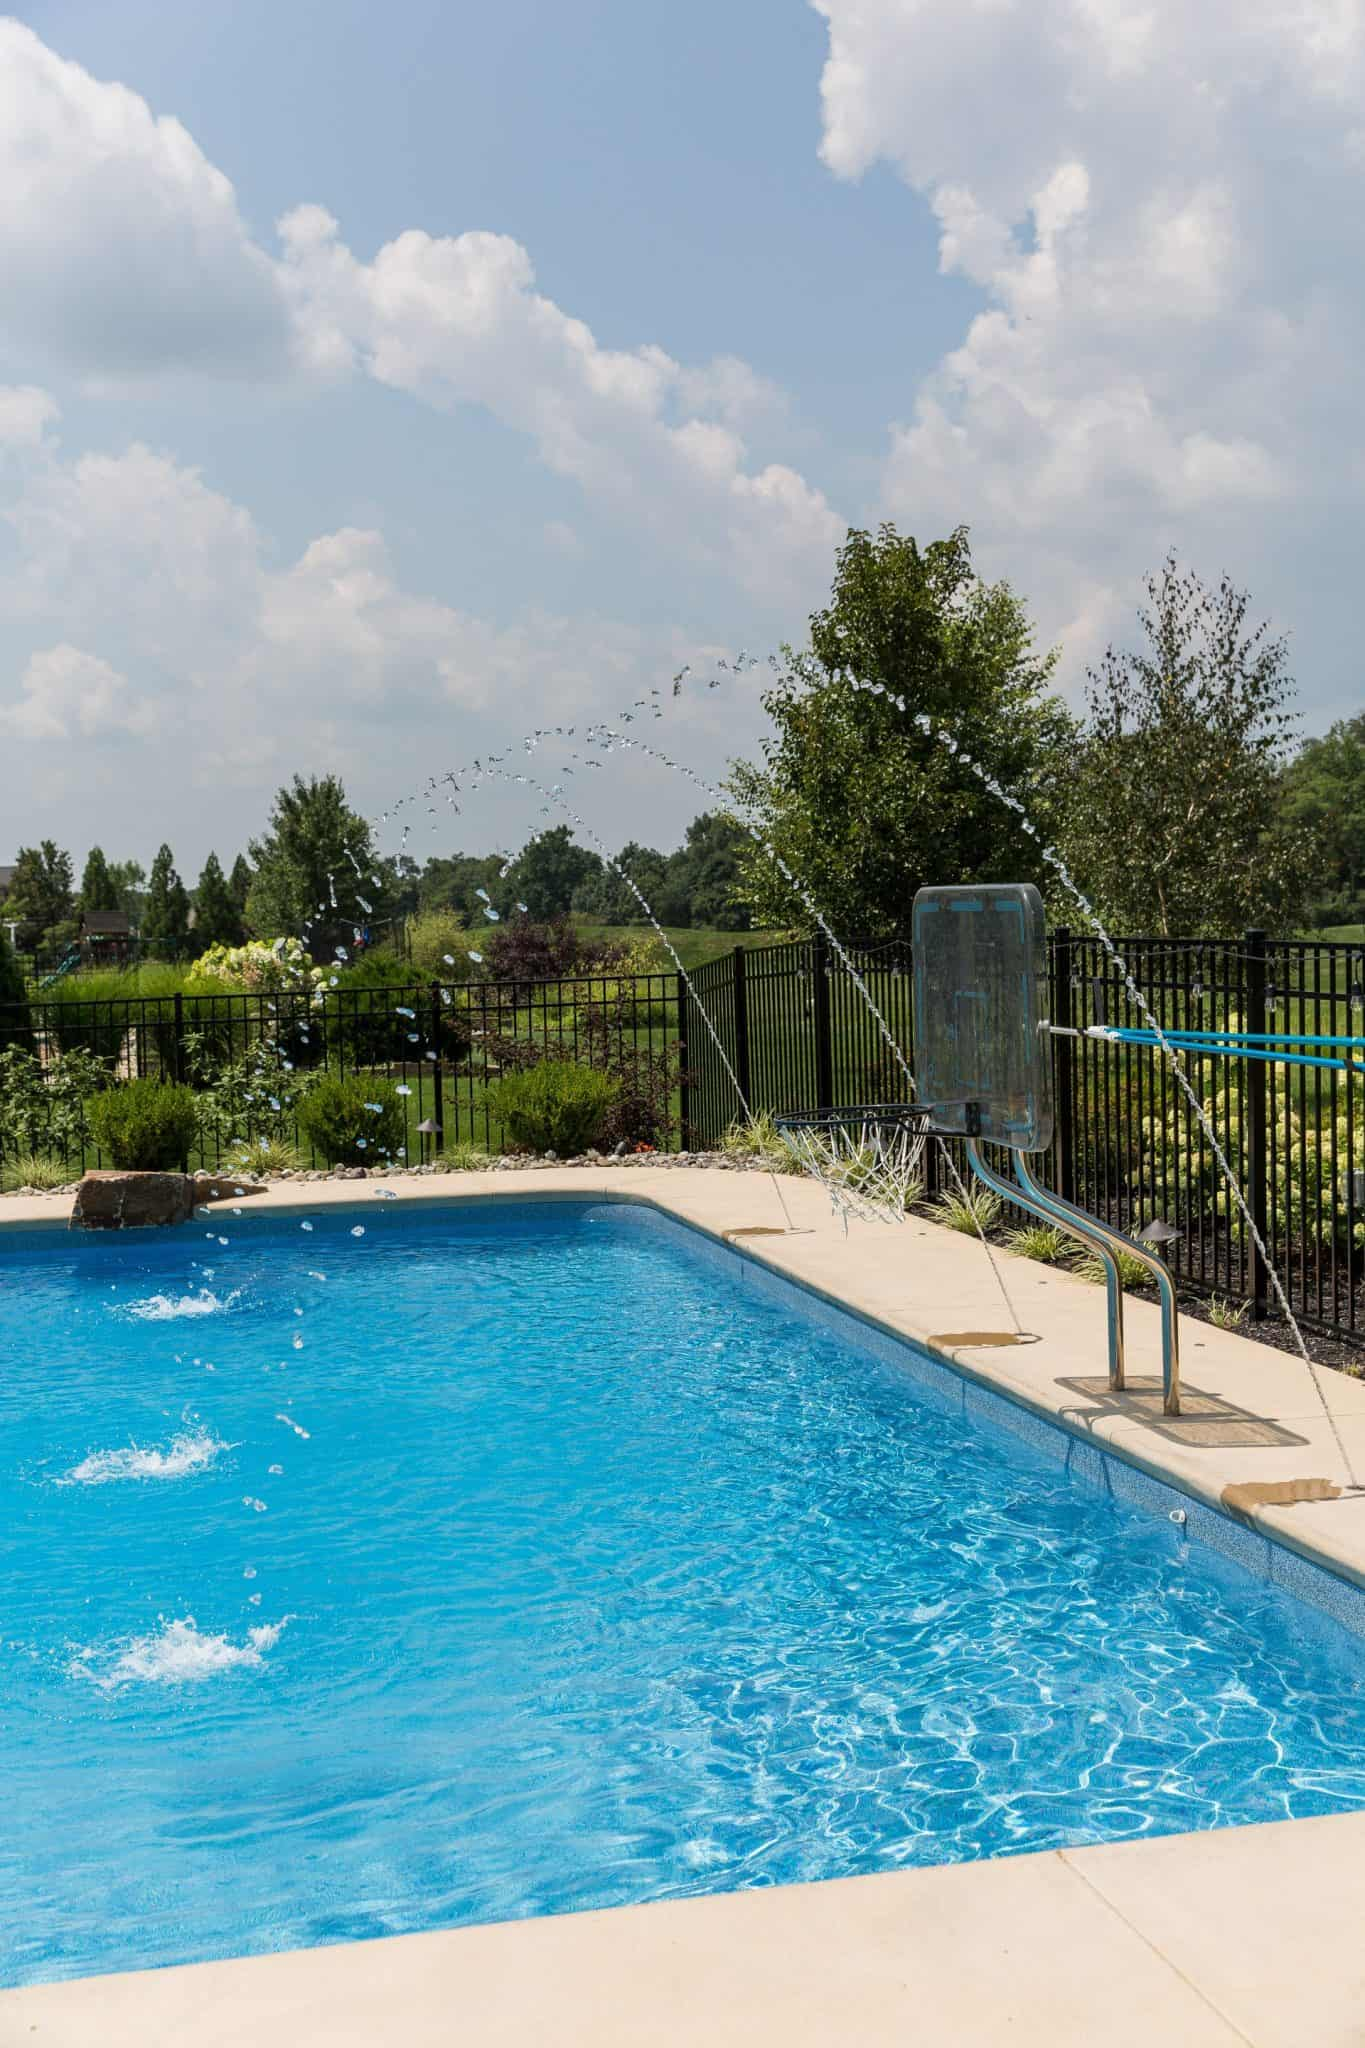 Do I Really Need a Swimming Pool Fence? - Fronheiser Pools